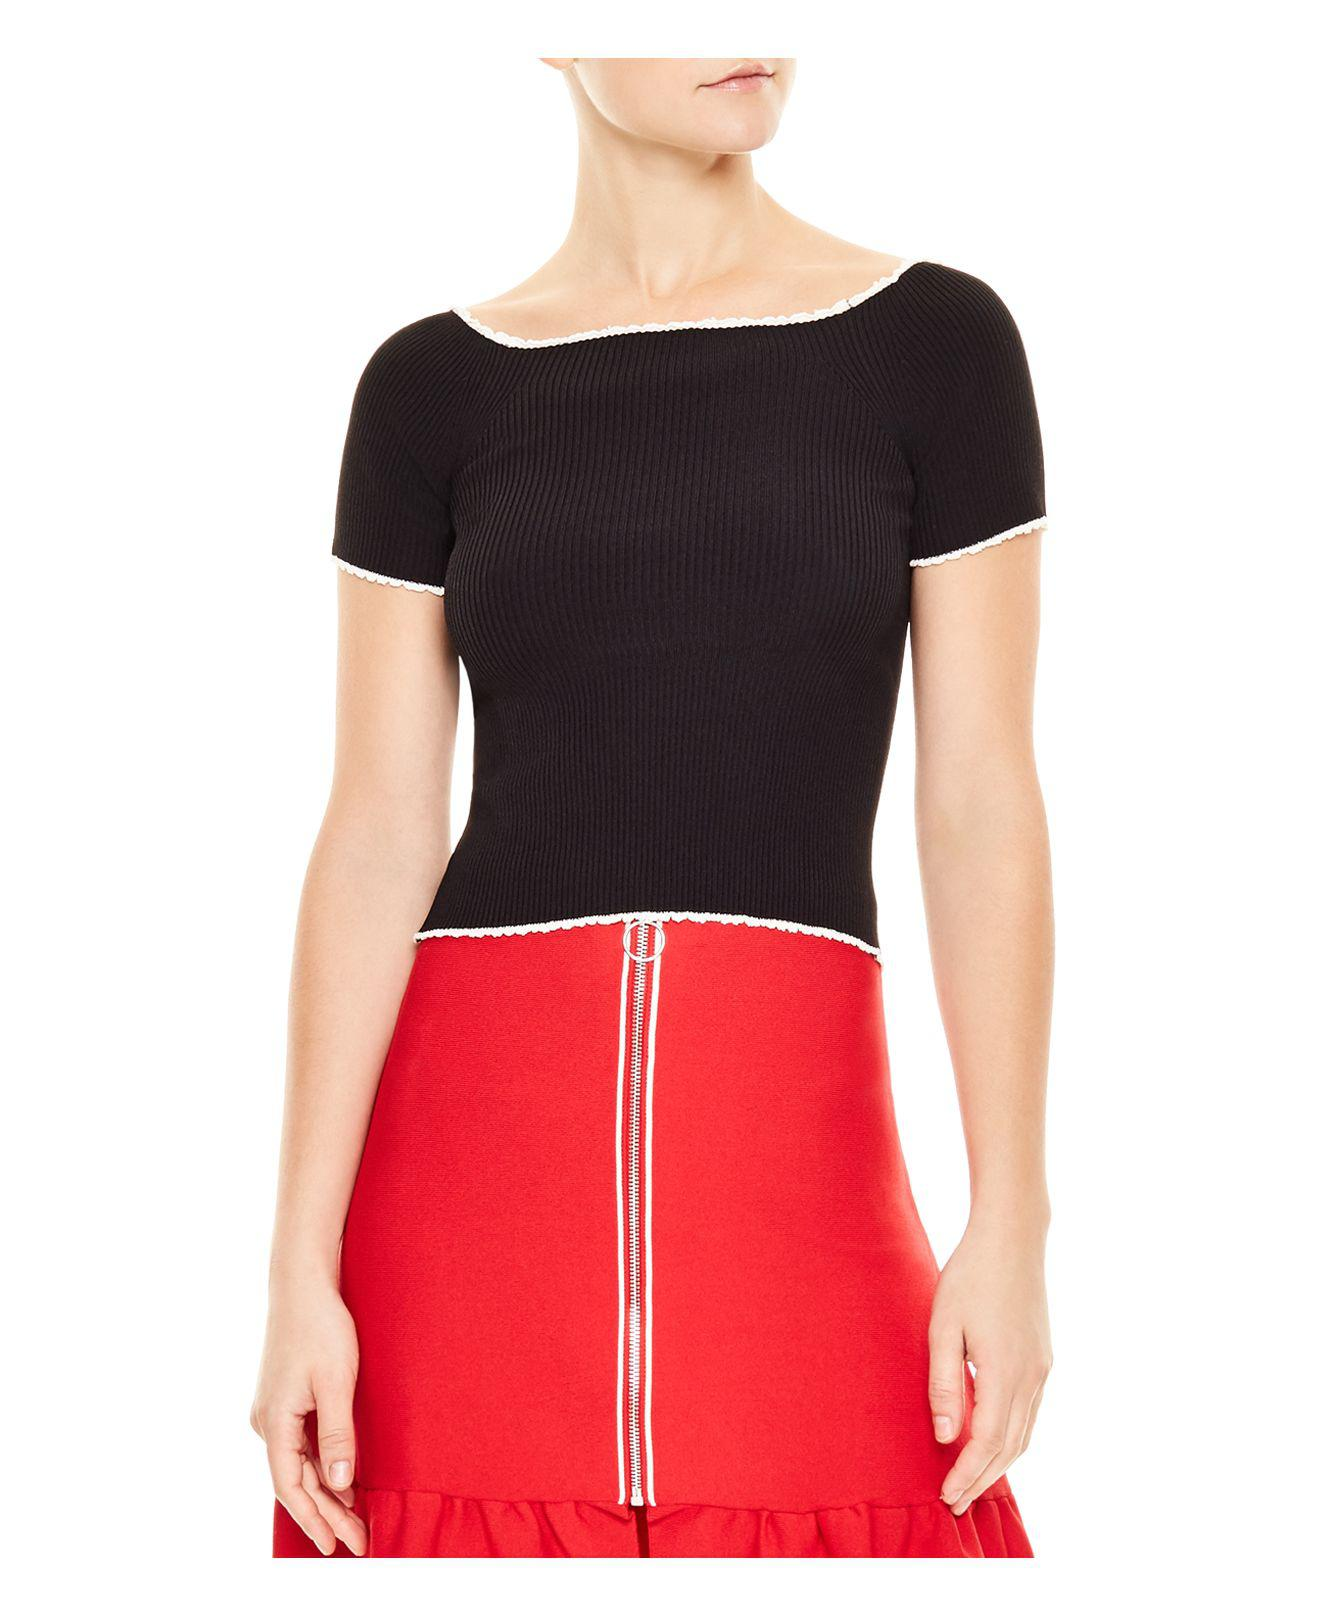 Sandro Ouma Cropped Ribbed Sweater in Black | Lyst